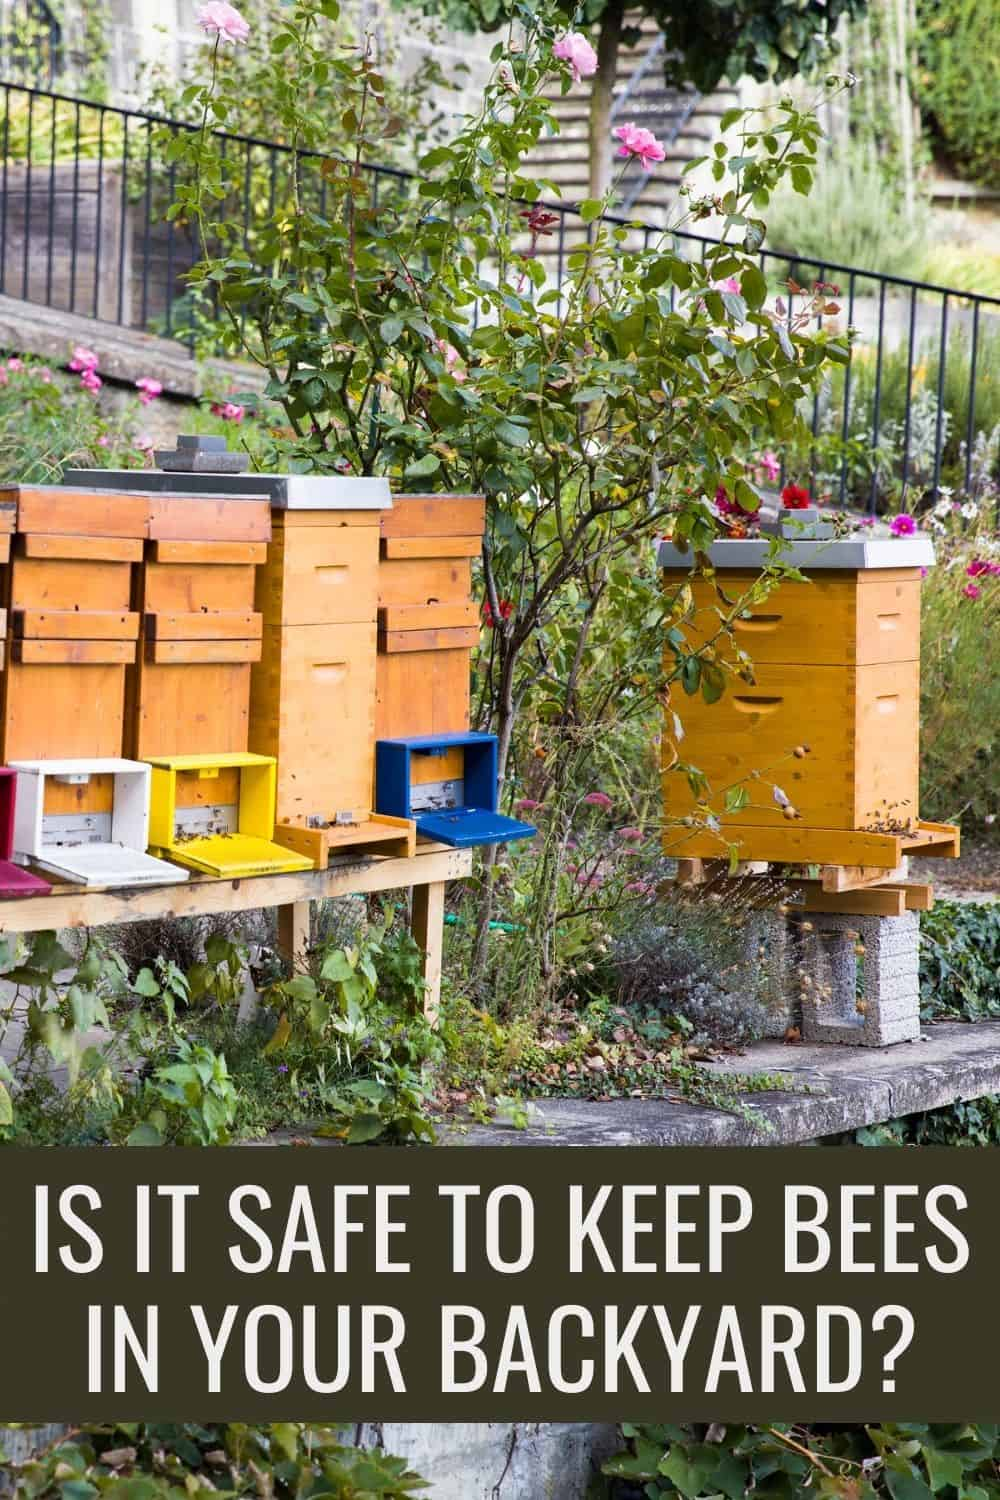 Is it safe to keep bees in your backyard?